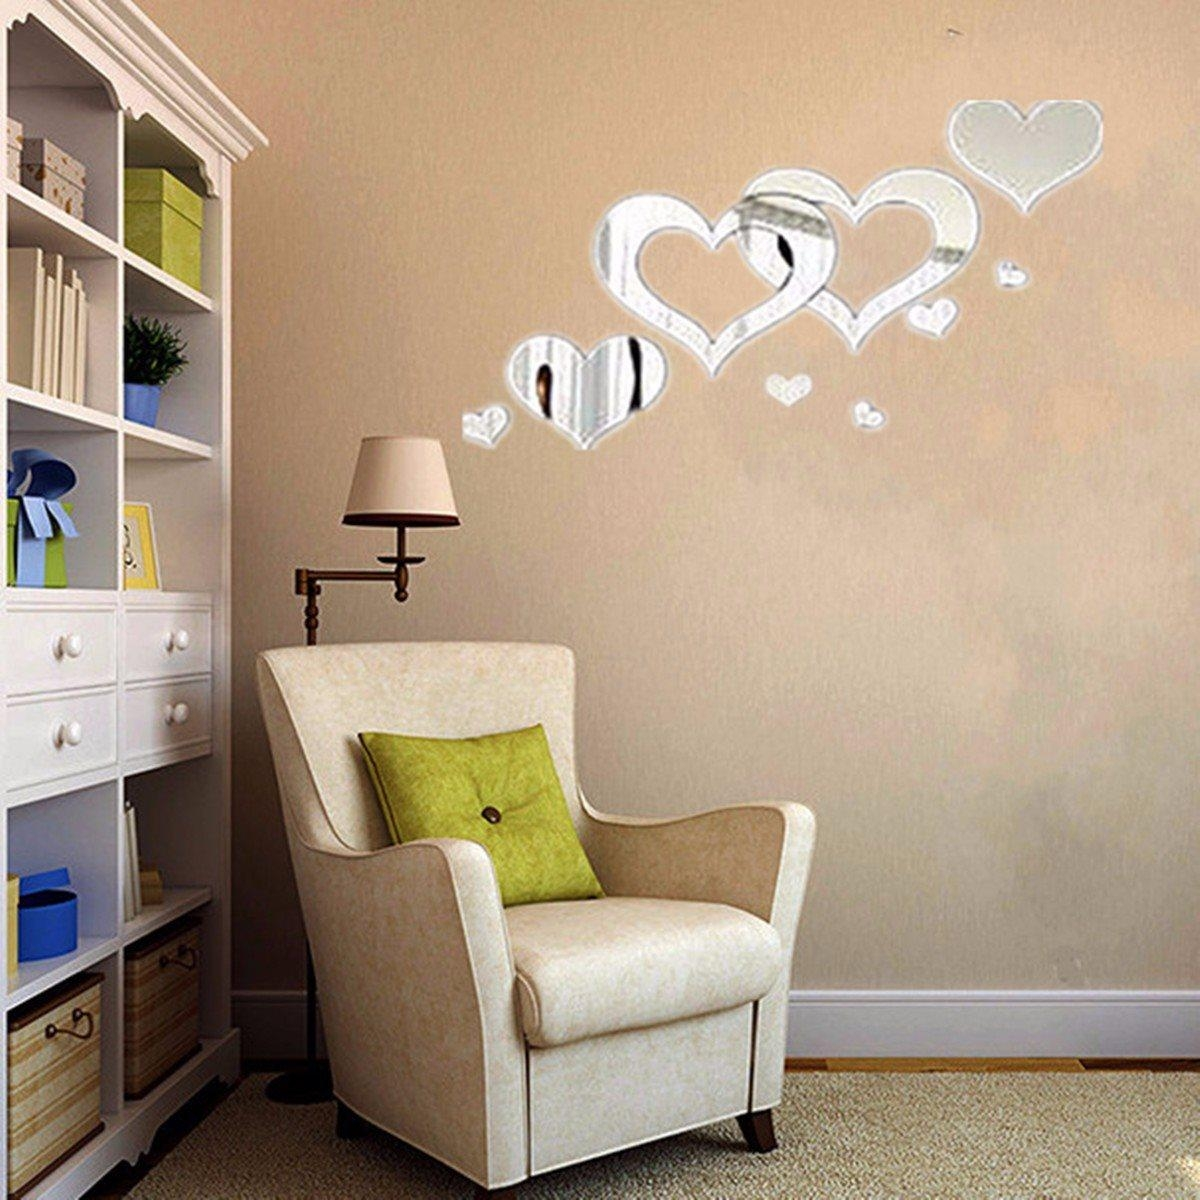 Popular Heart Shaped Mirrors Buy Cheap Heart Shaped Mirrors Lots Regarding Heart Shaped Mirrors For Walls (Image 16 of 20)